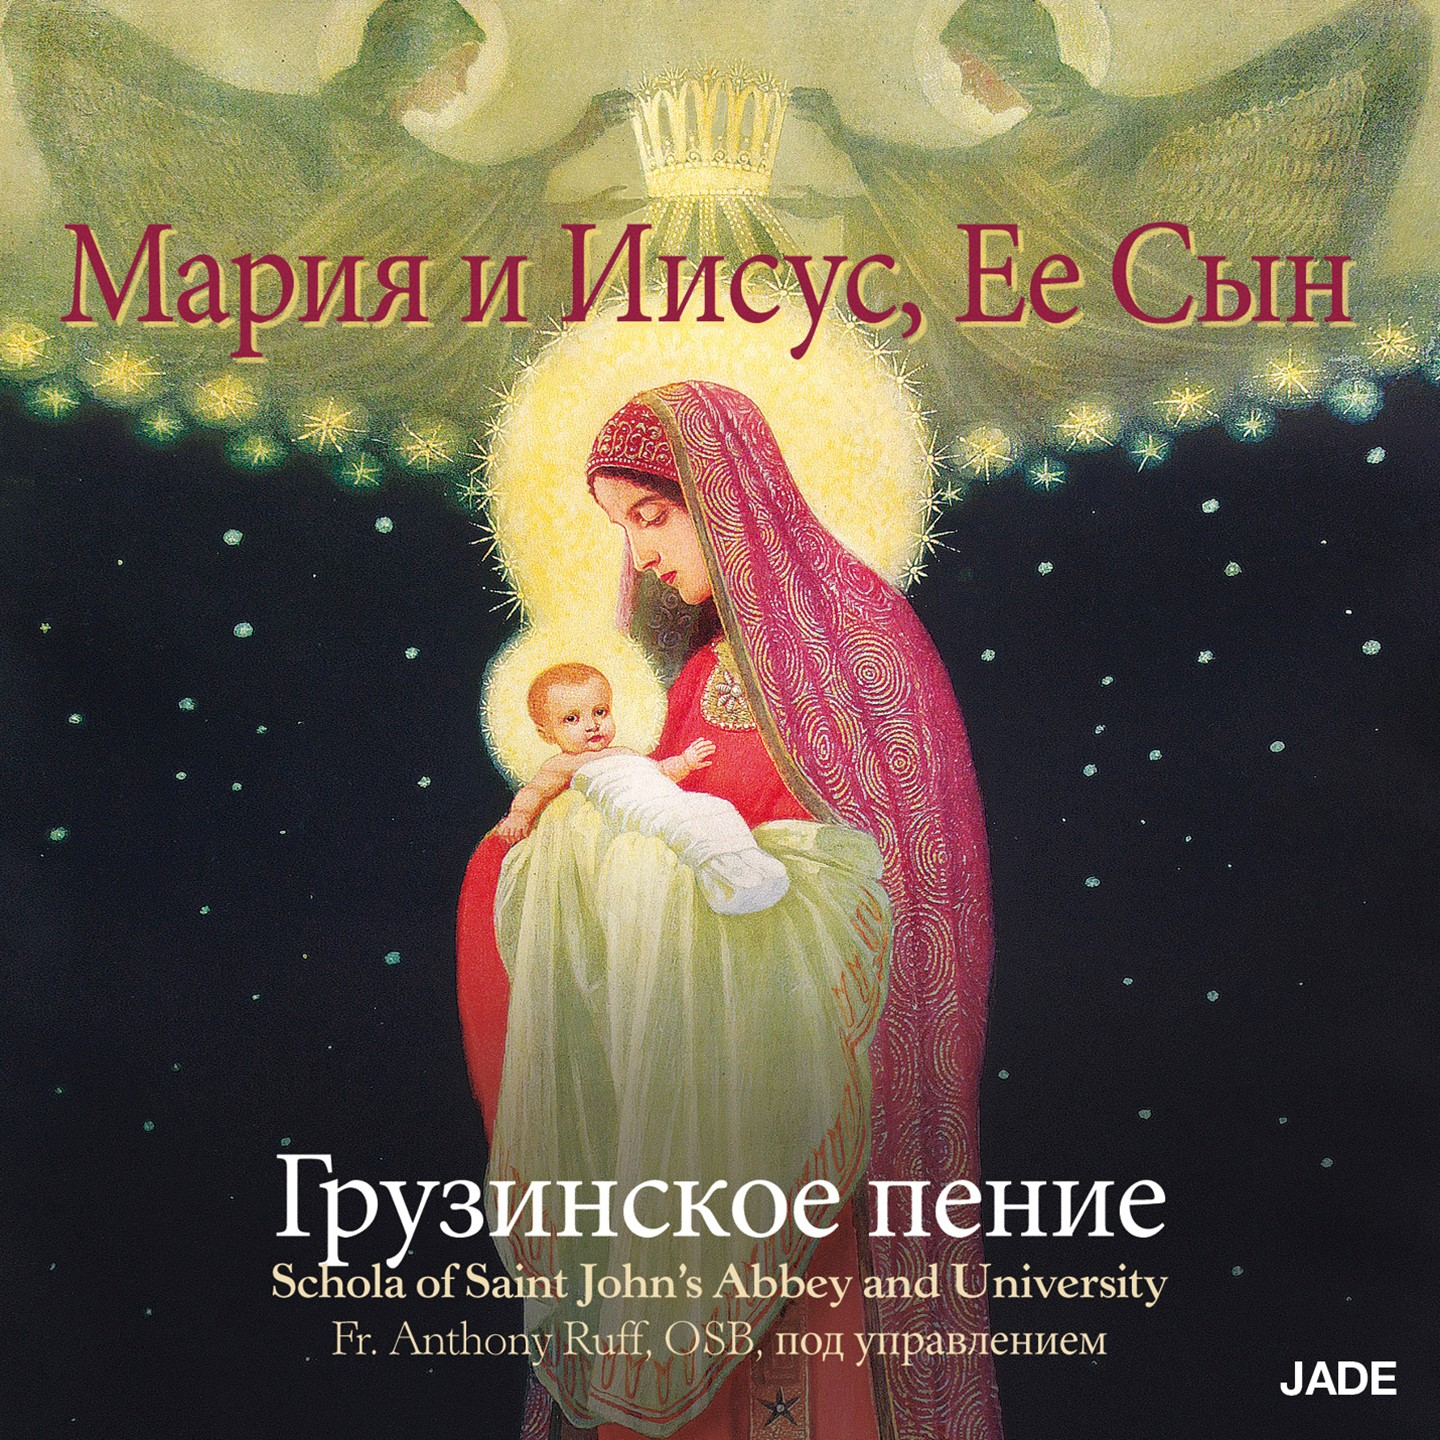 Chant CD Russian